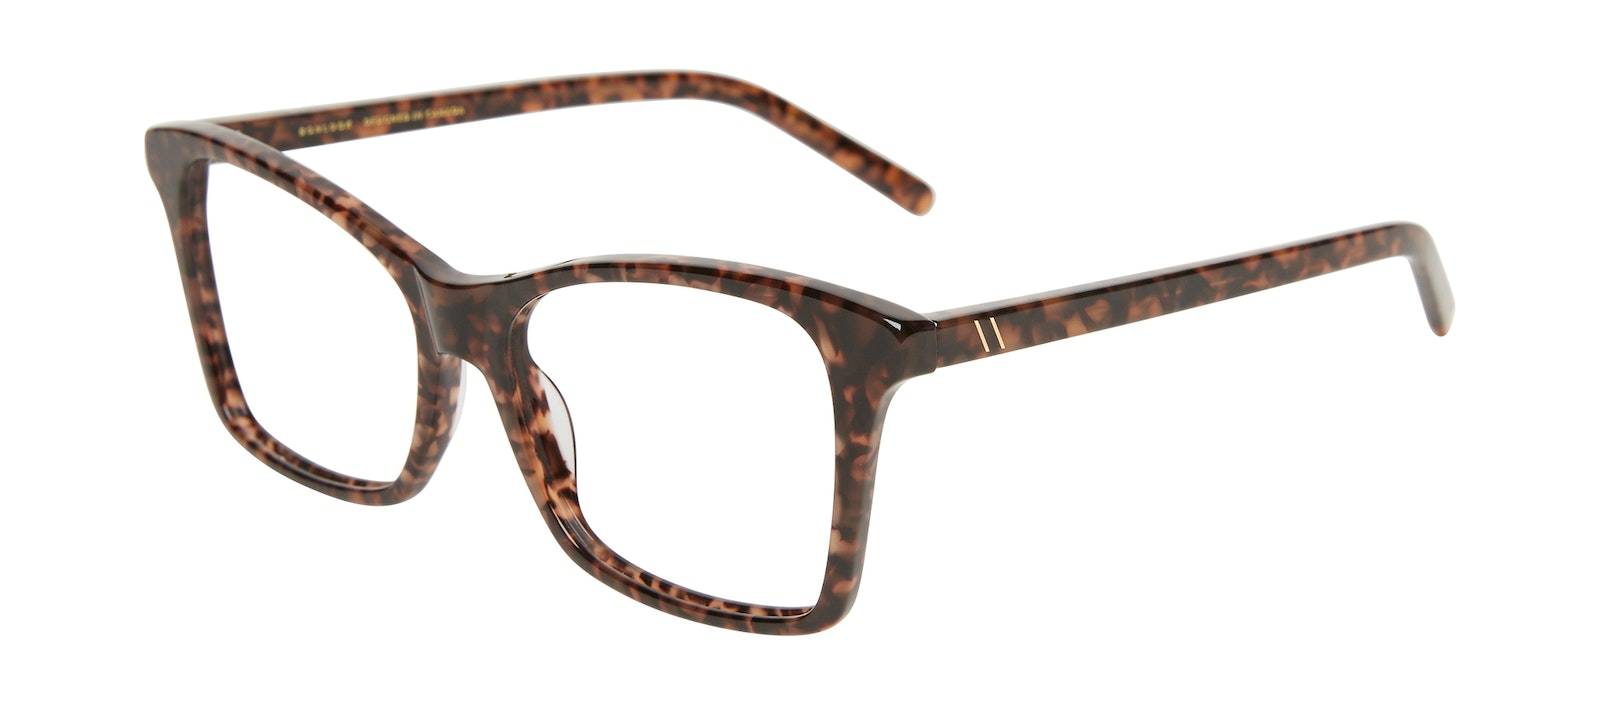 Affordable Fashion Glasses Square Eyeglasses Women Cadence Leopard Tilt